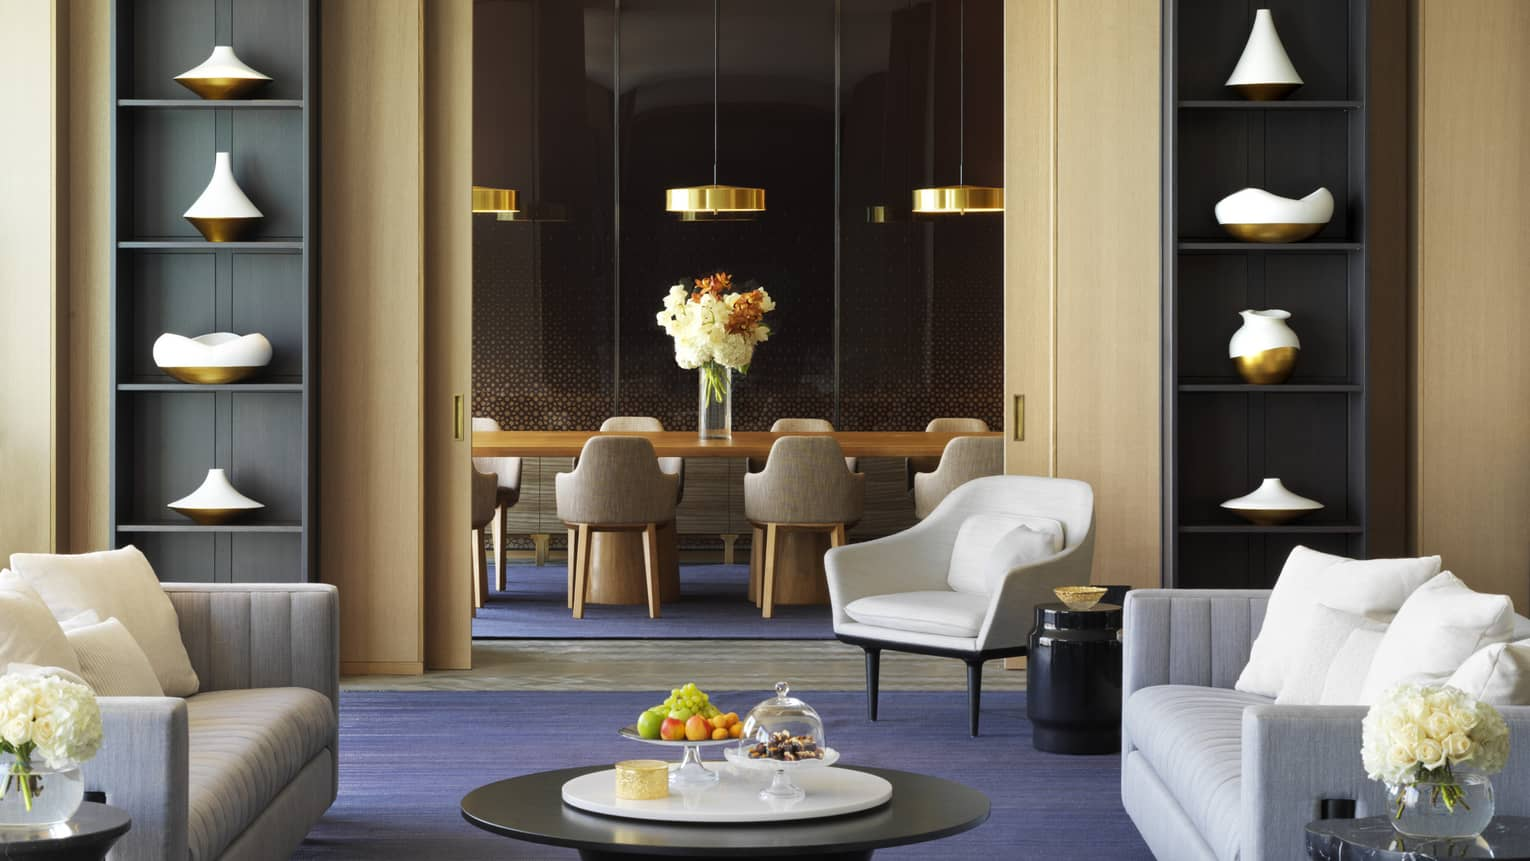 Modern dining table, gold lamps in private room behind lounge with tall bookshelves, sofas